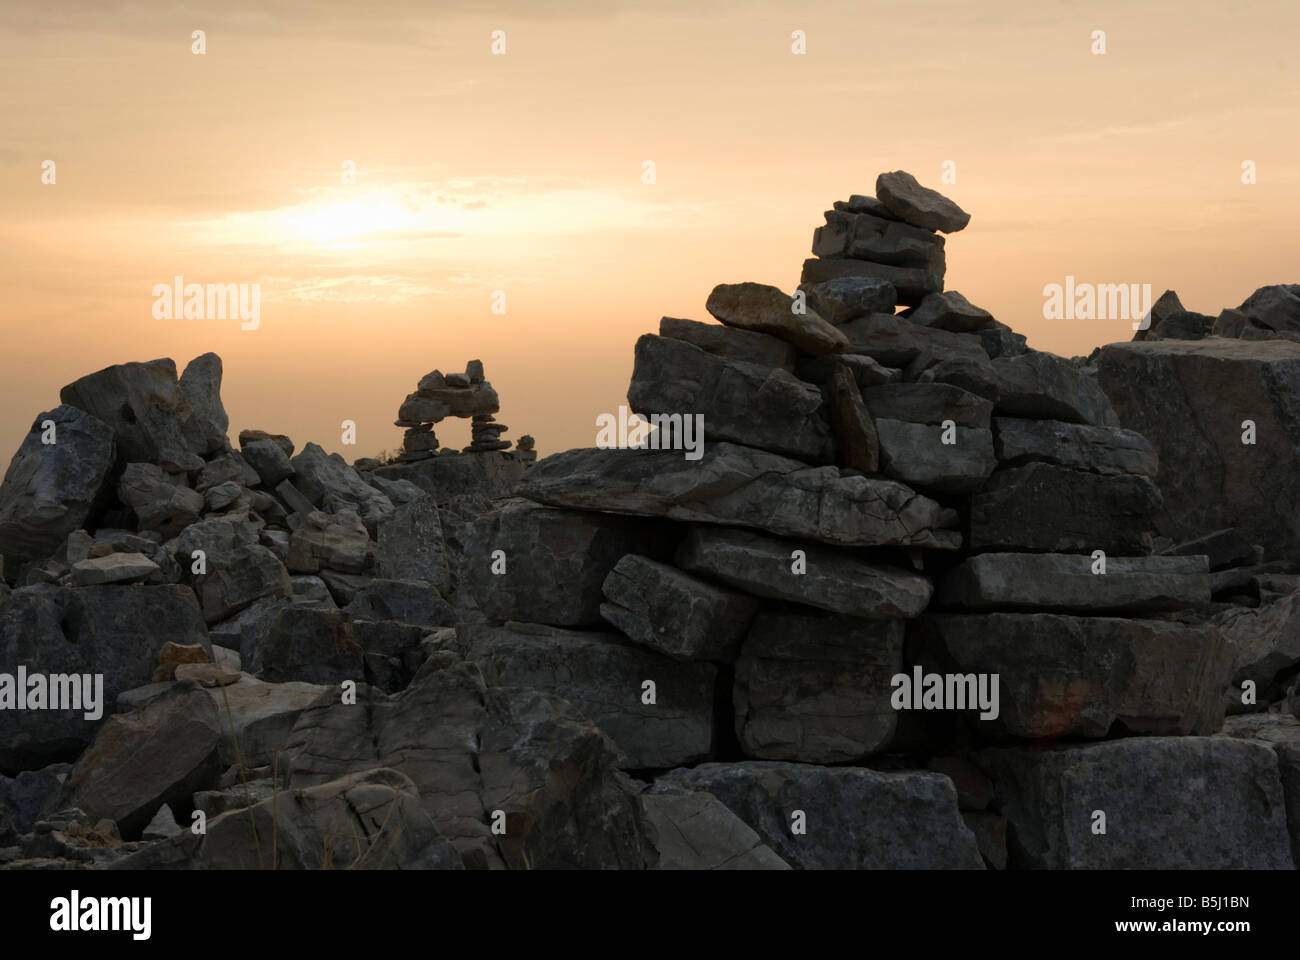 piles of stones rocks put together by visitors into structures, bridges, sculptures on the Croatian island of Zut - Stock Image